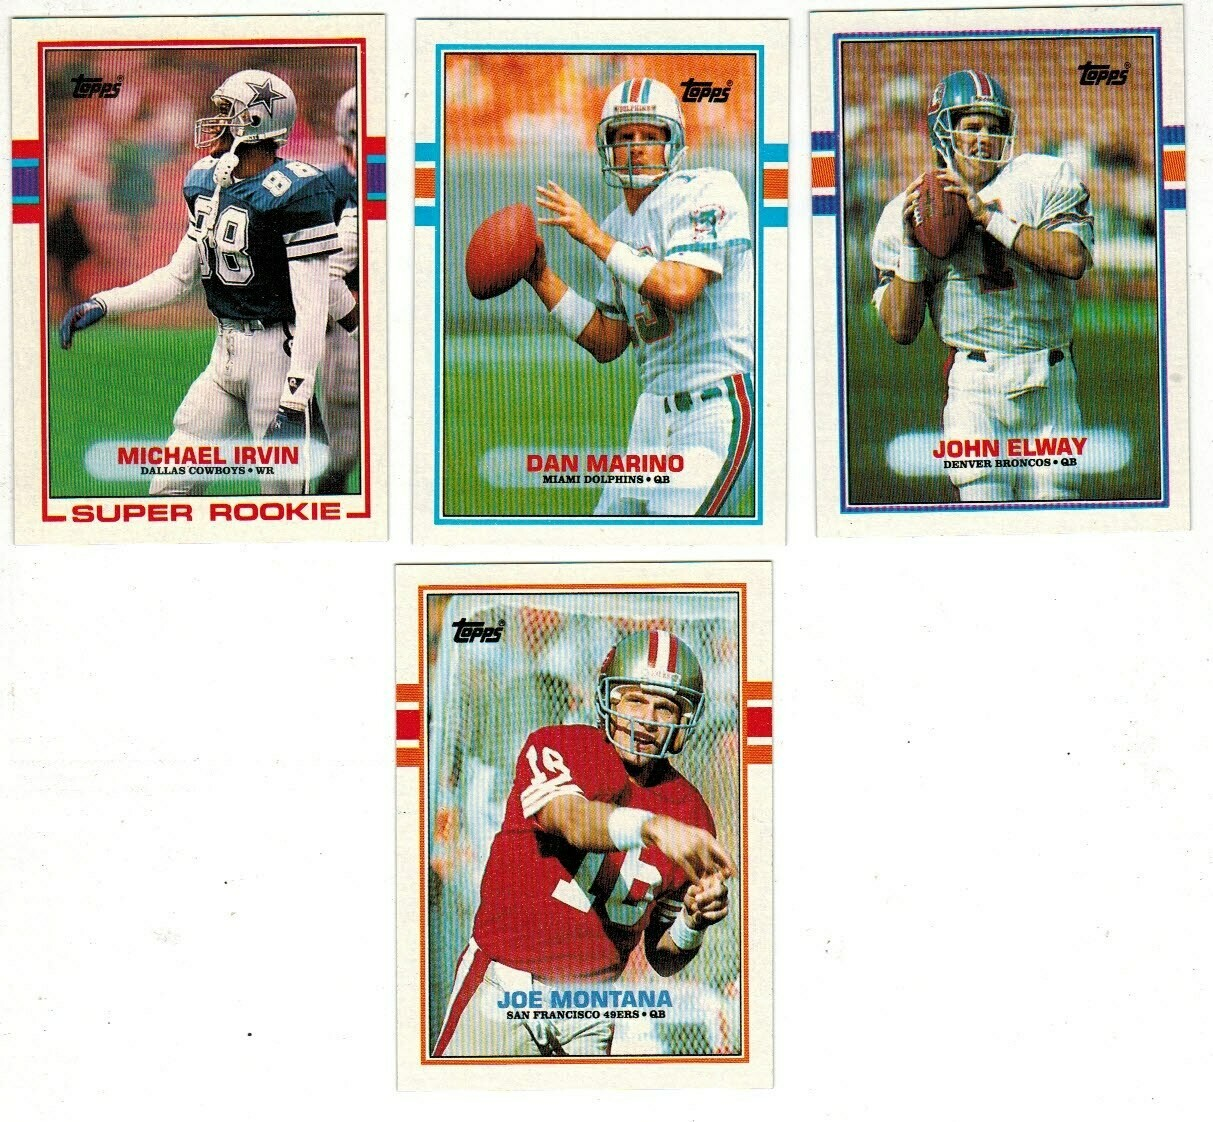 1989 Topps Football set-M.Irvin rc, Elway, Marino, Montana Nr Mint